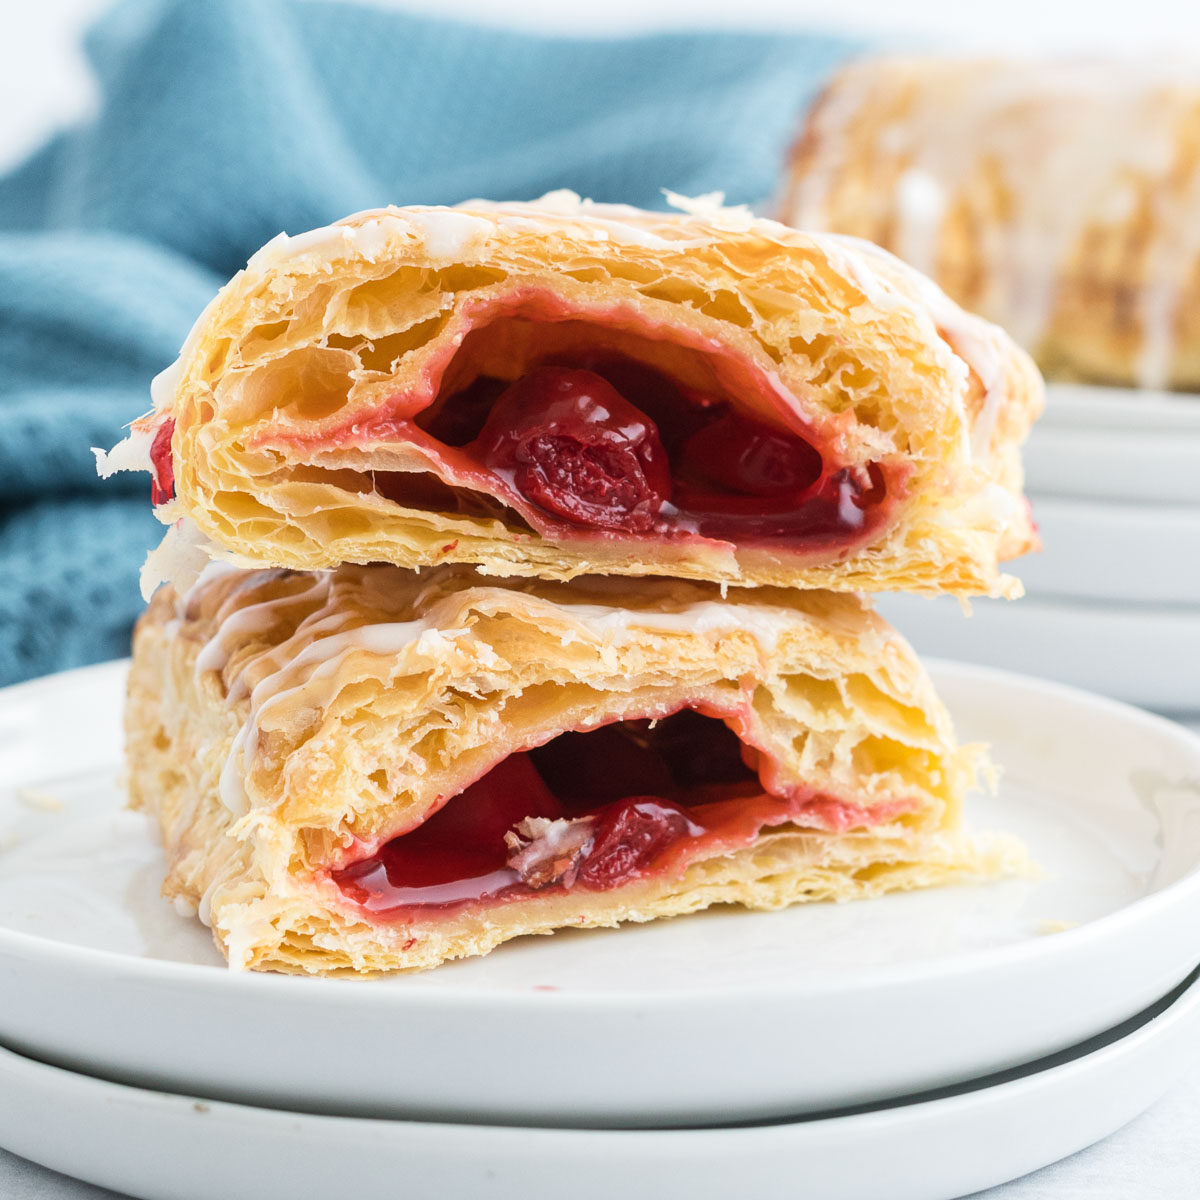 A flaky puff pastry turnover cut in half and filled with cherry pie filling, drizzled with icing.